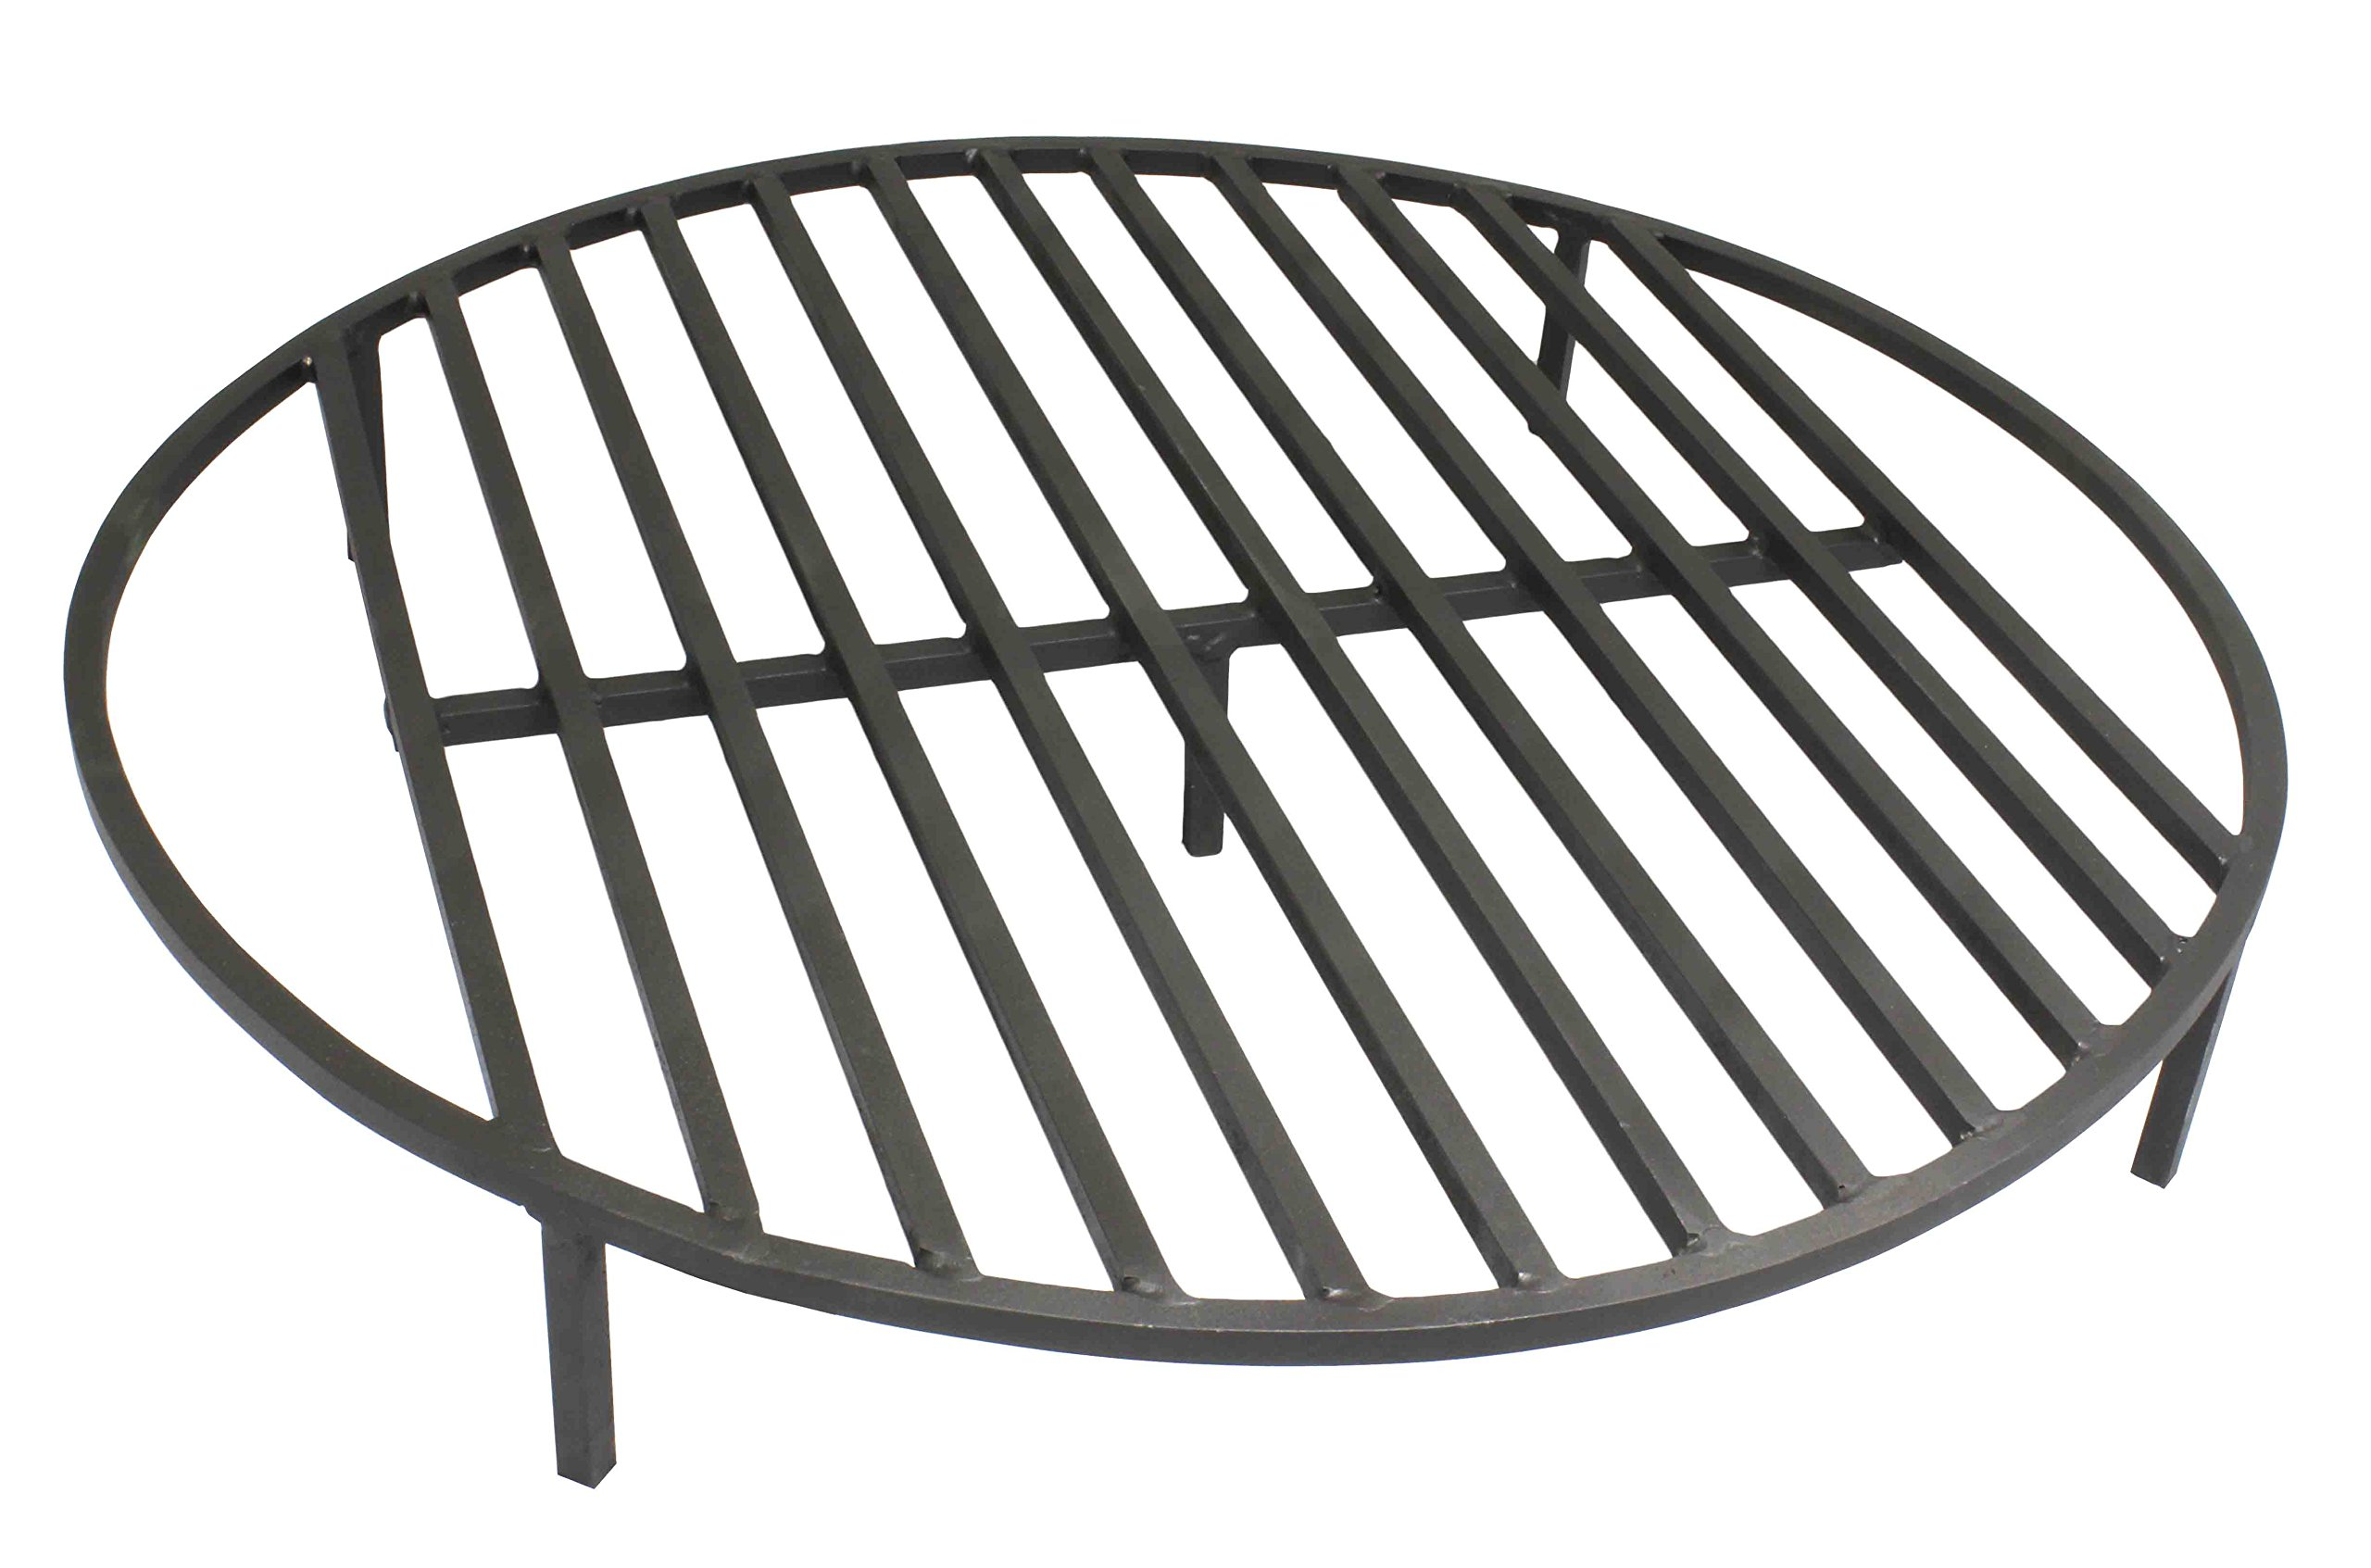 cheap fire cooking grate find fire cooking grate deals on line at